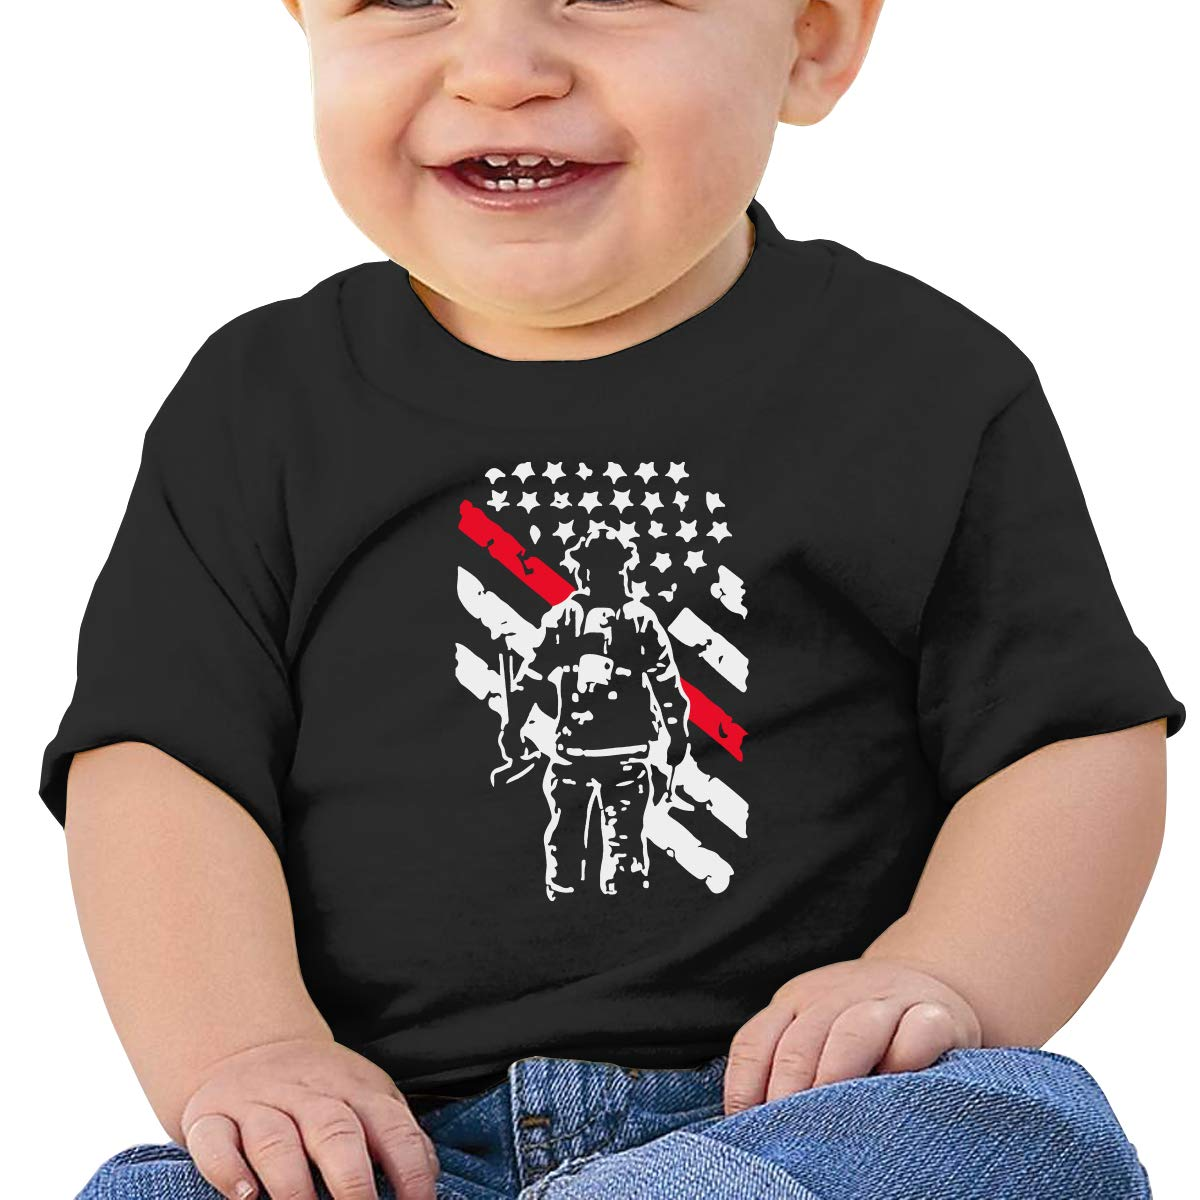 Firefighter Thin Red Line Baby Boys Girls Short Sleeve Crewneck T-Shirt 6-18 Month Tops